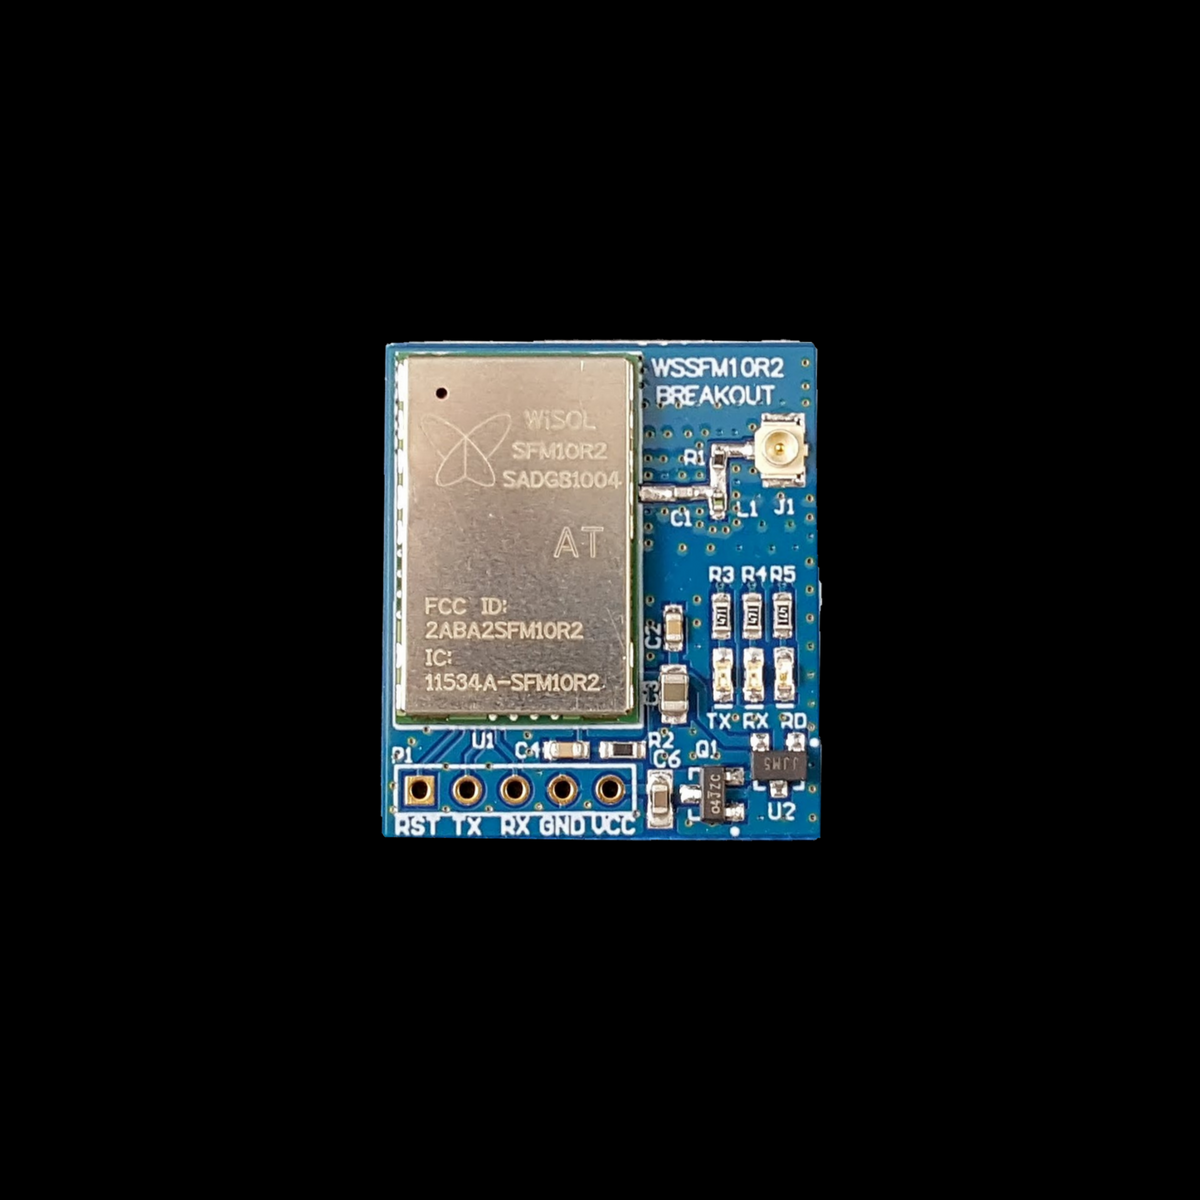 Wisol WSSFM10R2 Dual Voltage Breakout Board